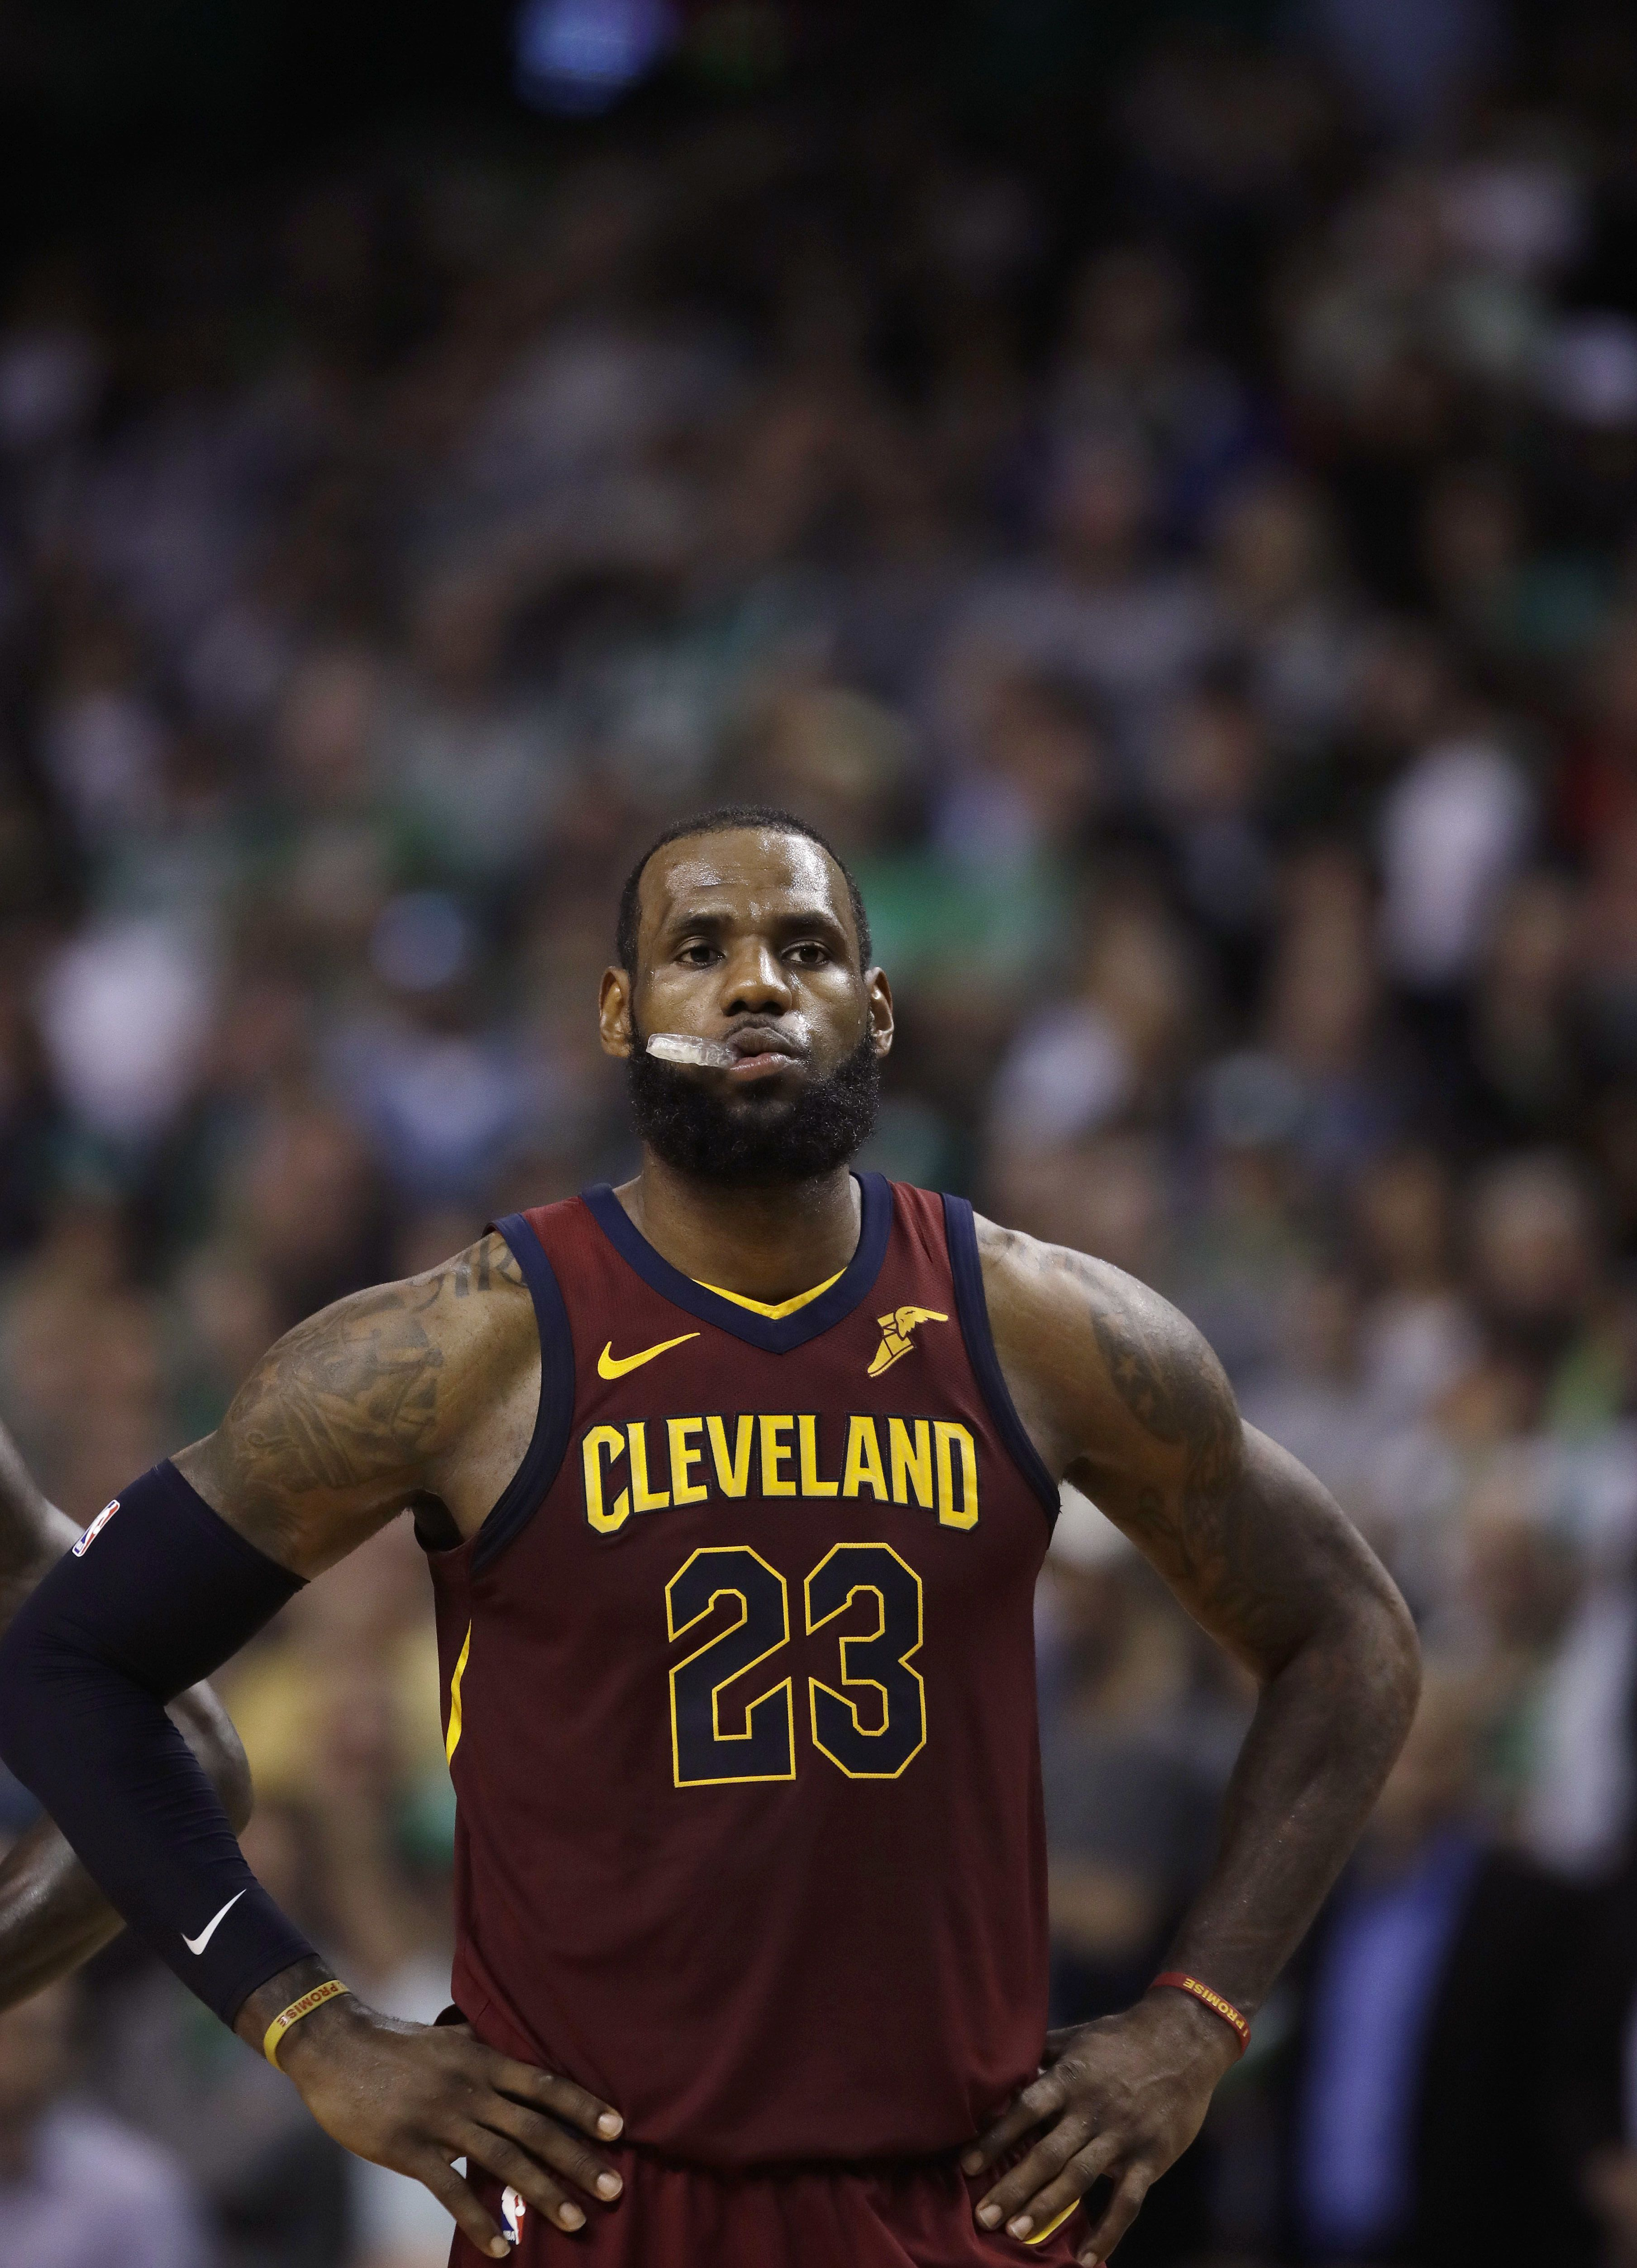 Should The Celtics Pursue Lebron James Given The Likely Cost